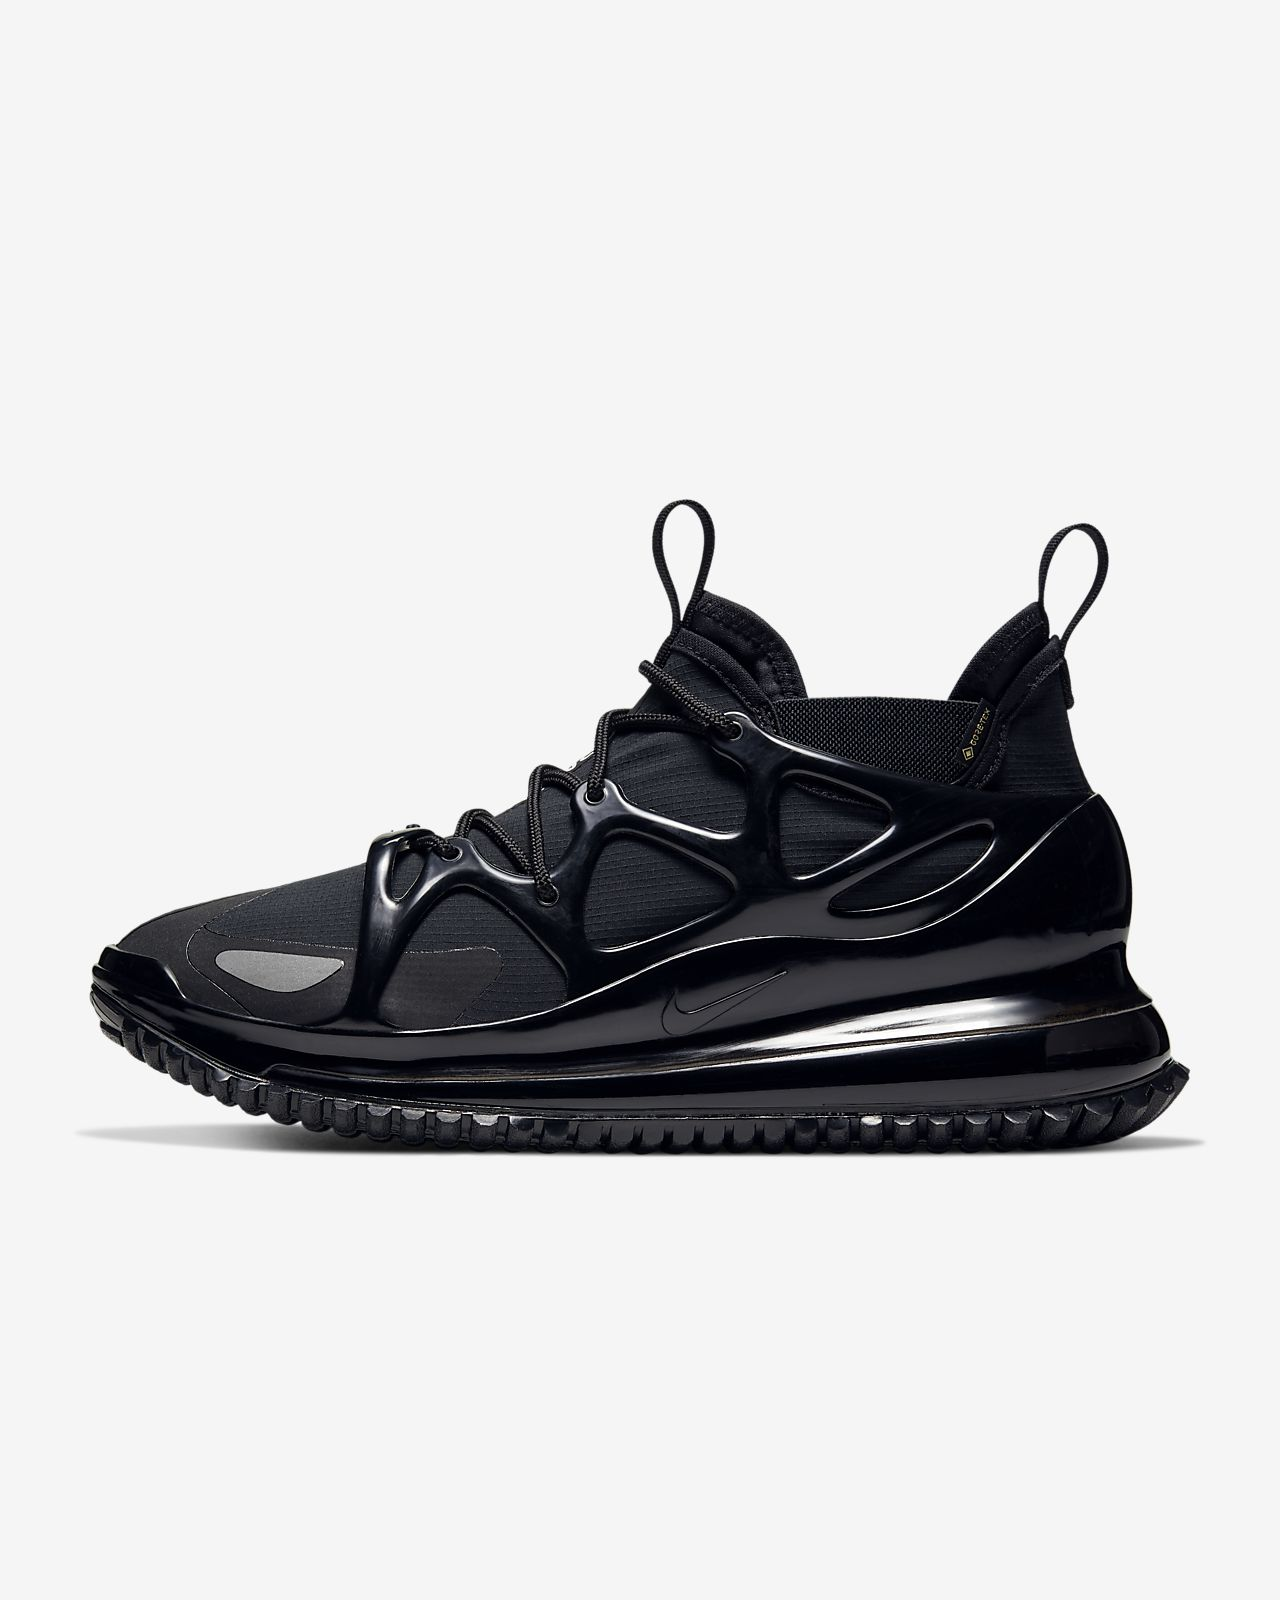 NIKE AIR MAX 720 NOIR à 190€ Core a Core Shop